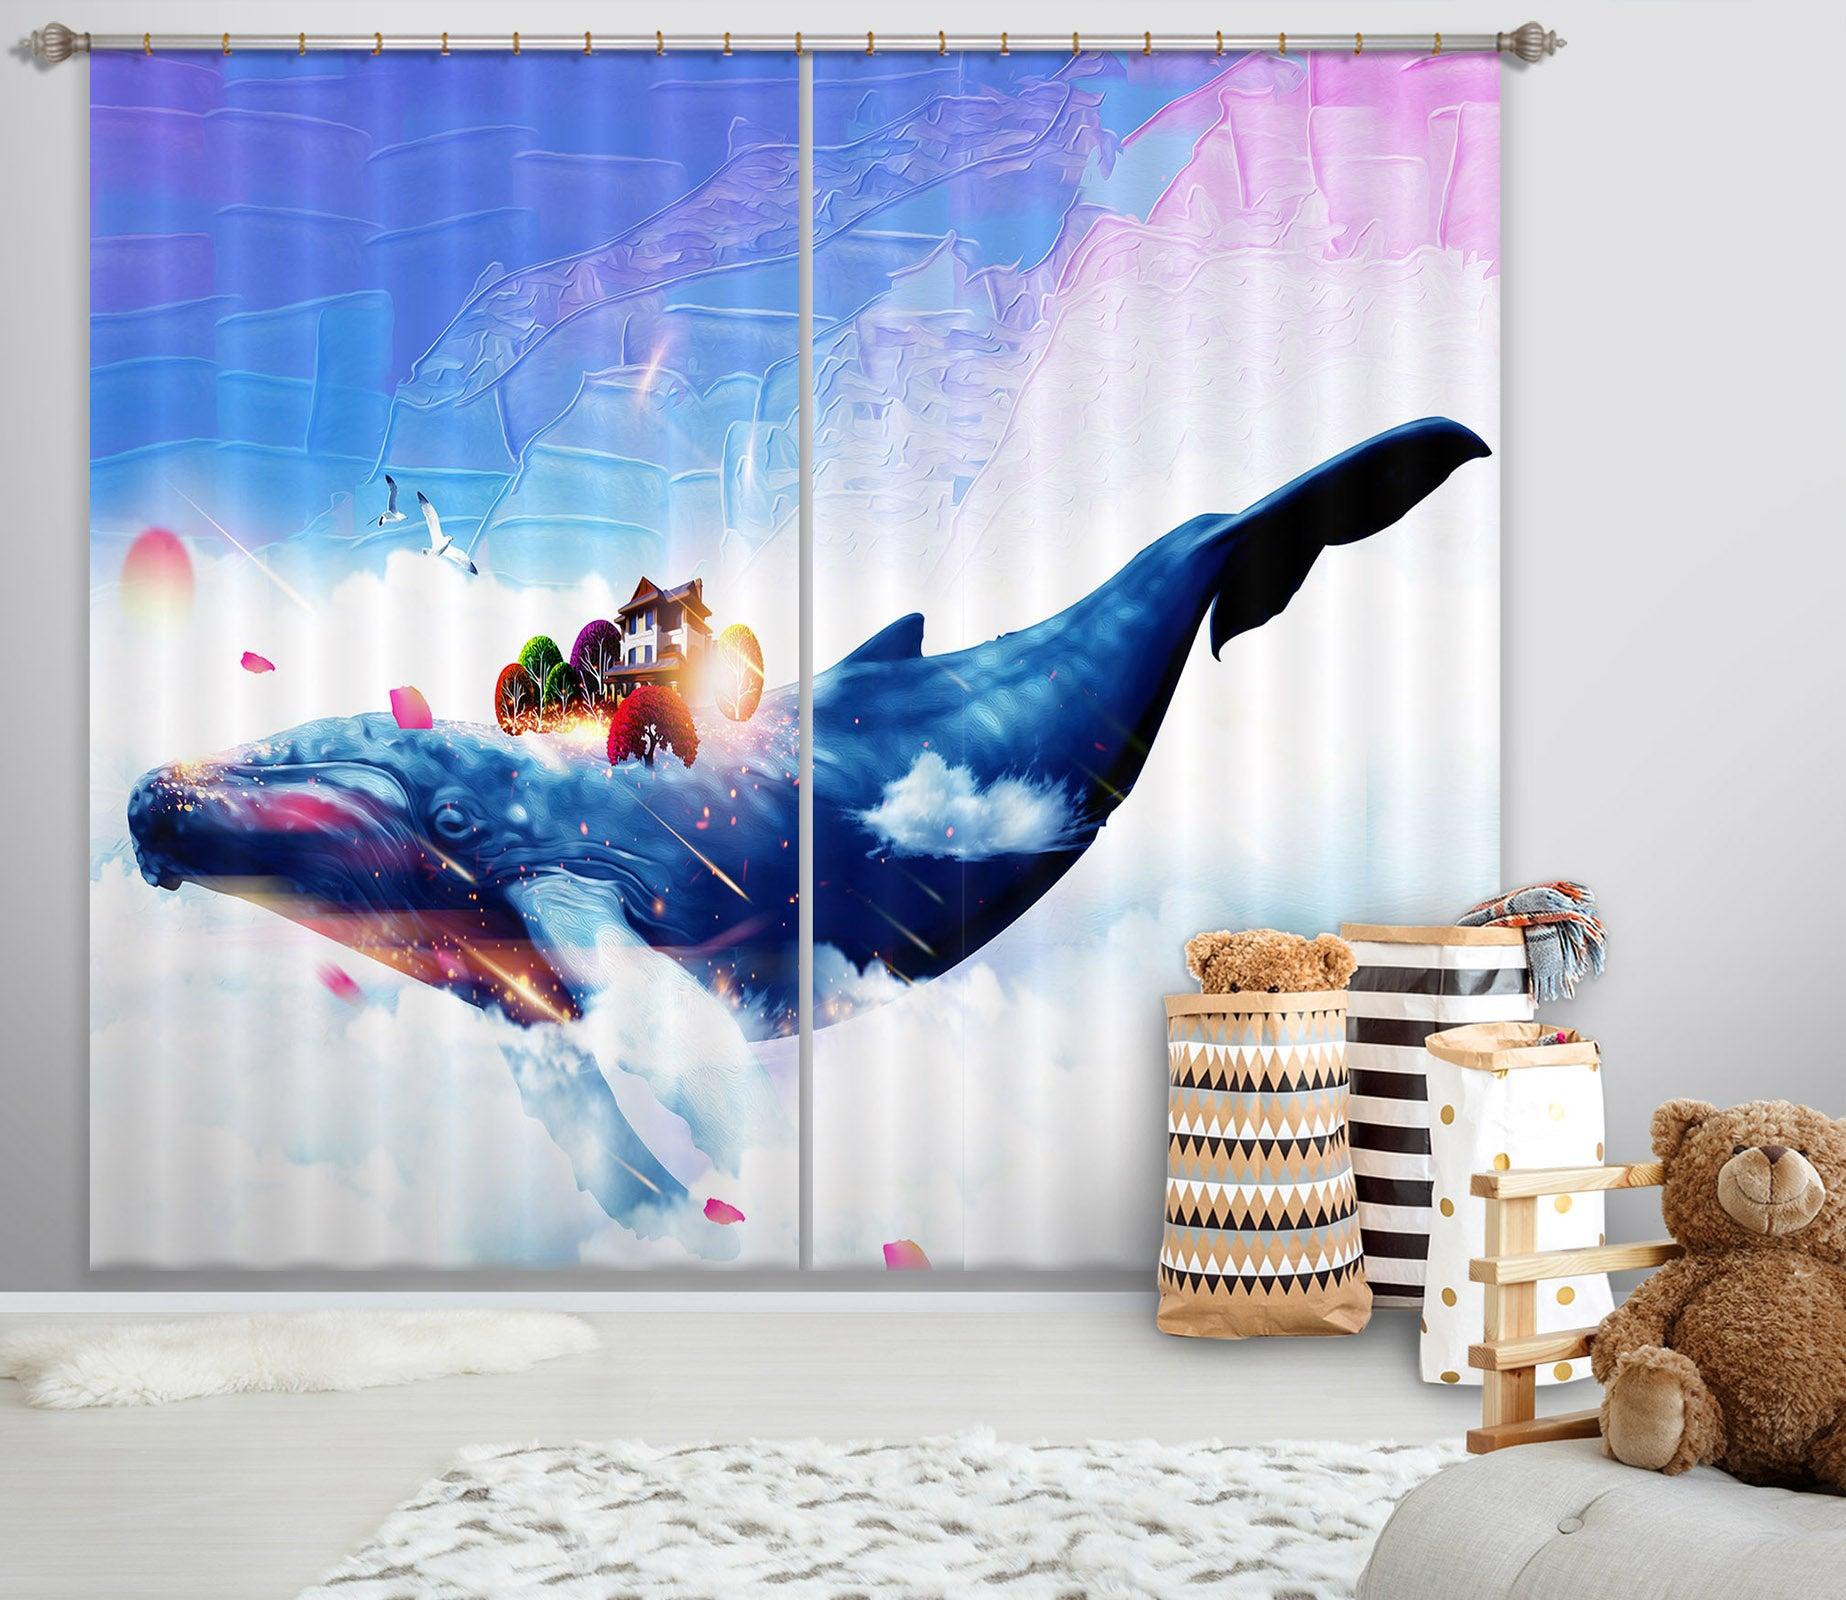 3D Blue Whale 729 Curtains Drapes